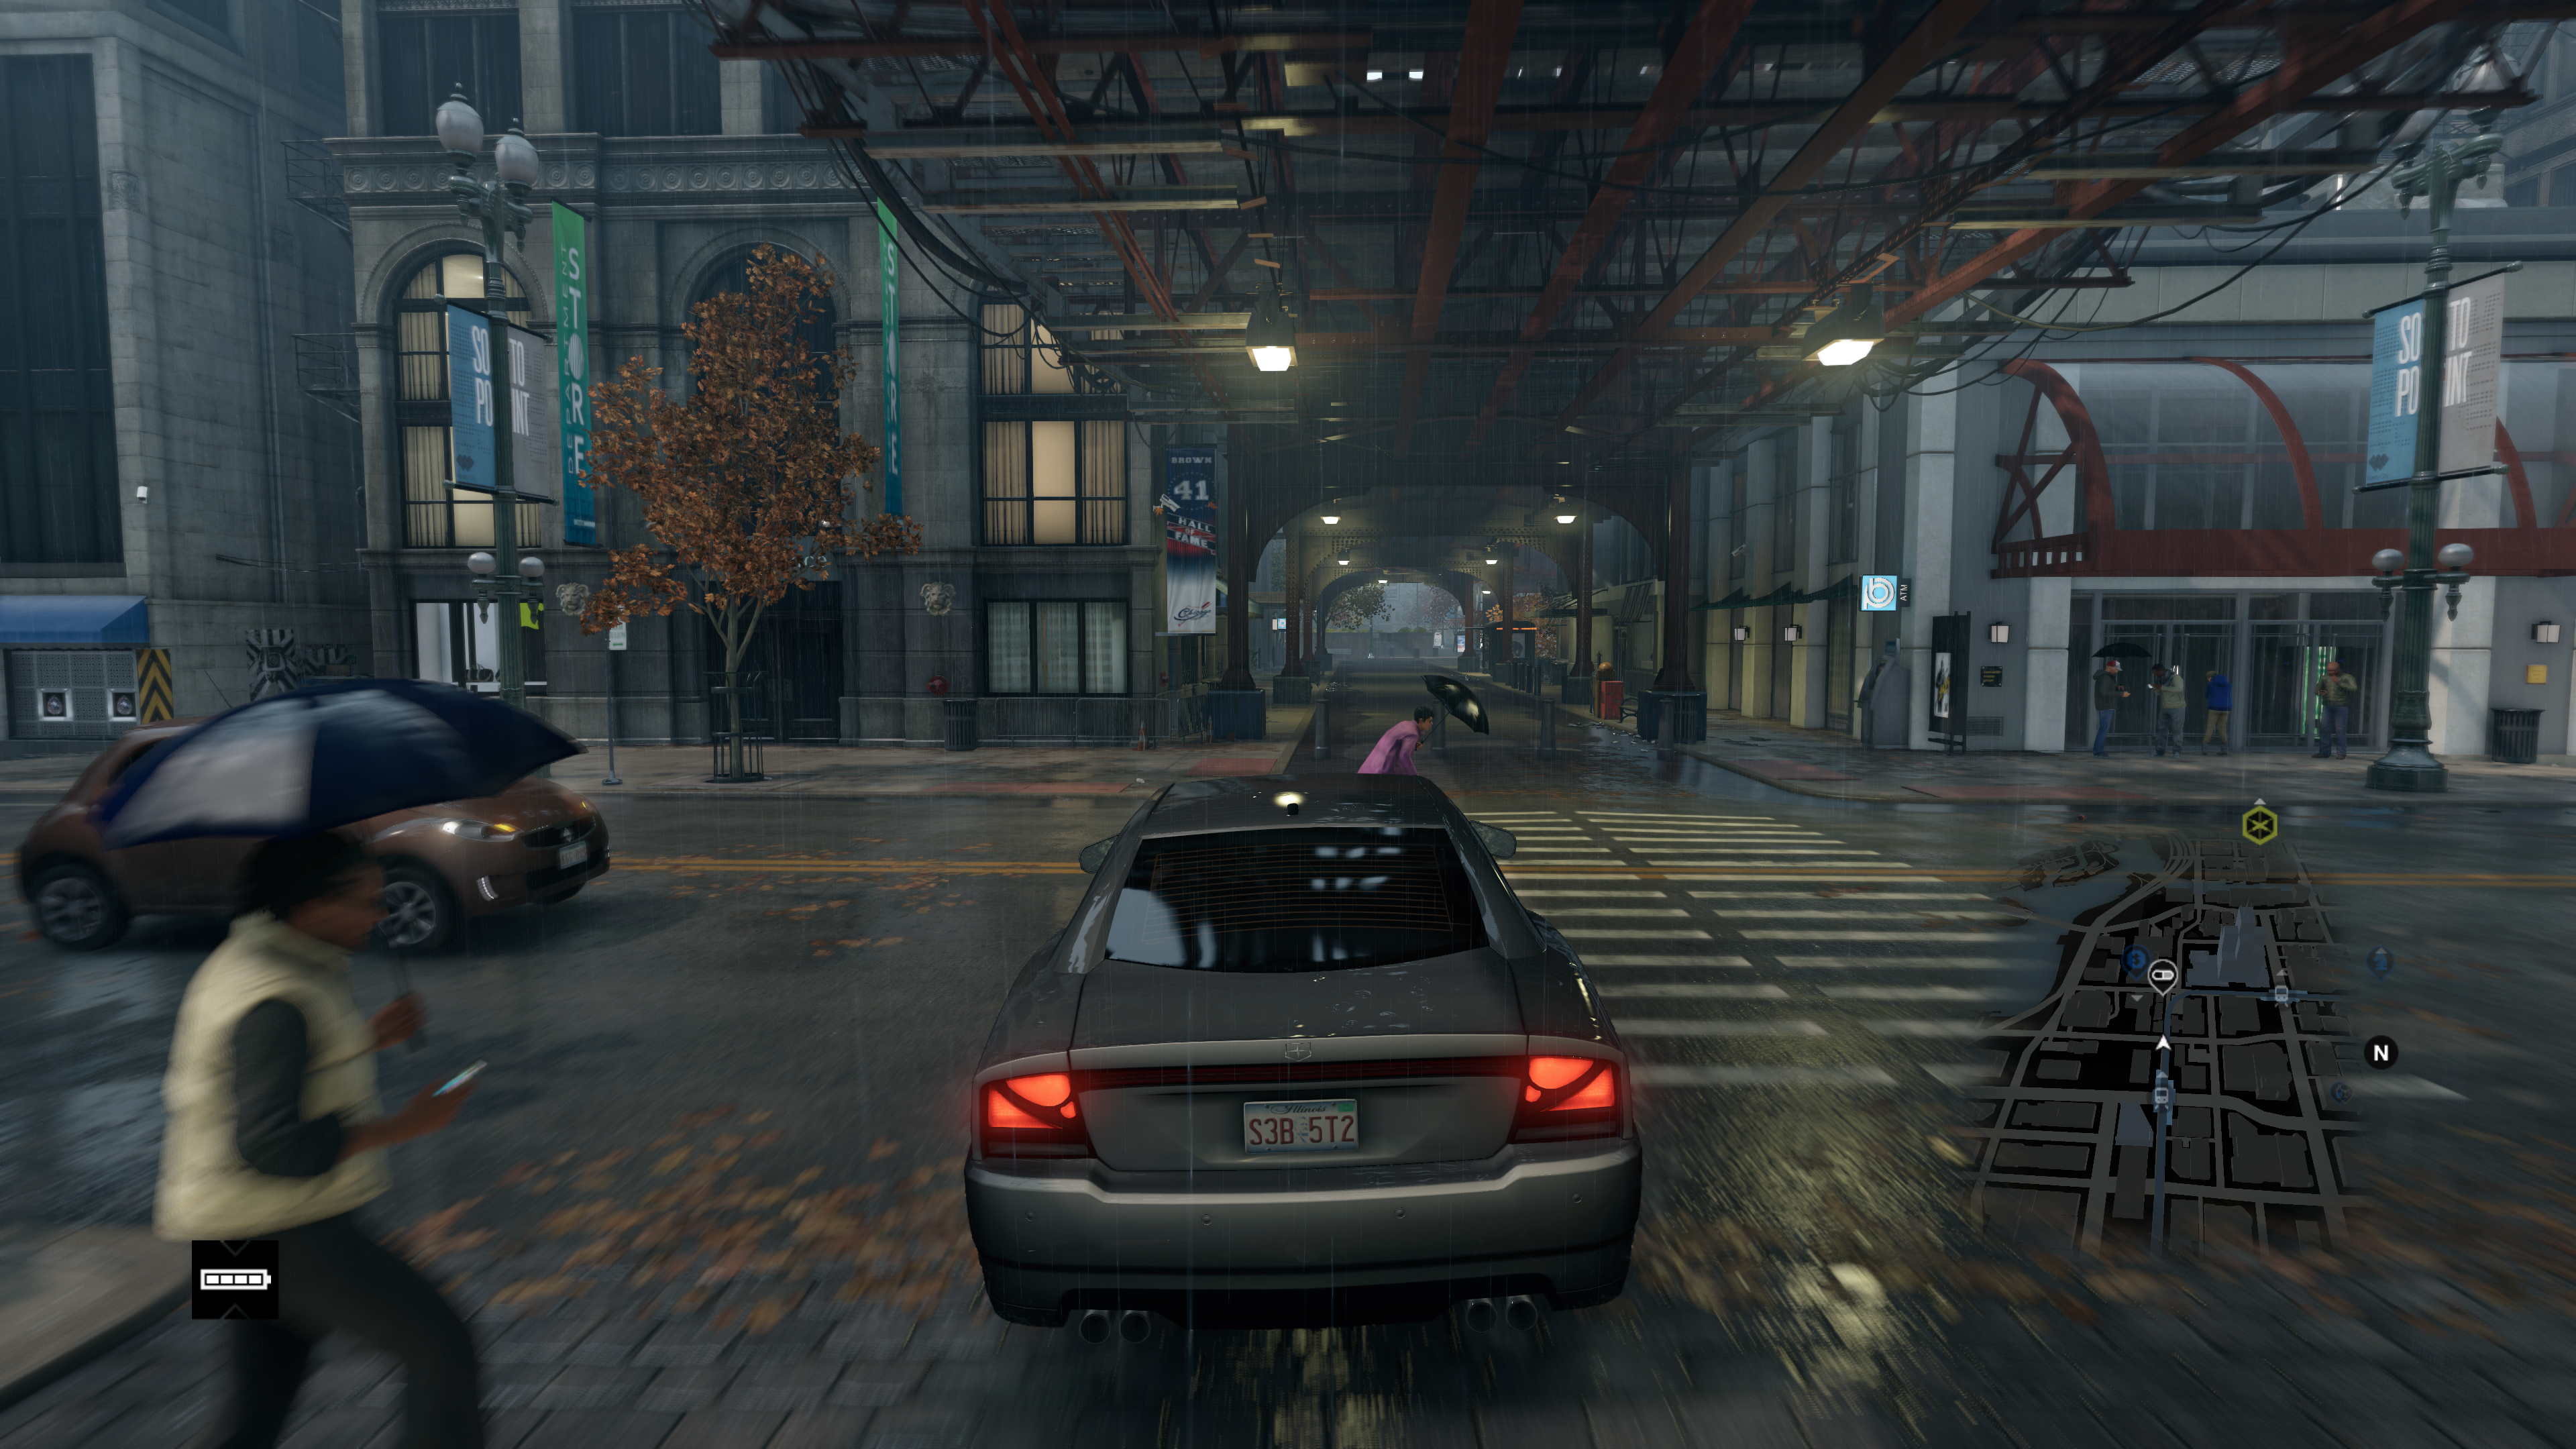 http://cdn.wccftech.com/wp-content/uploads/2014/05/Watch-Dogs-8.png